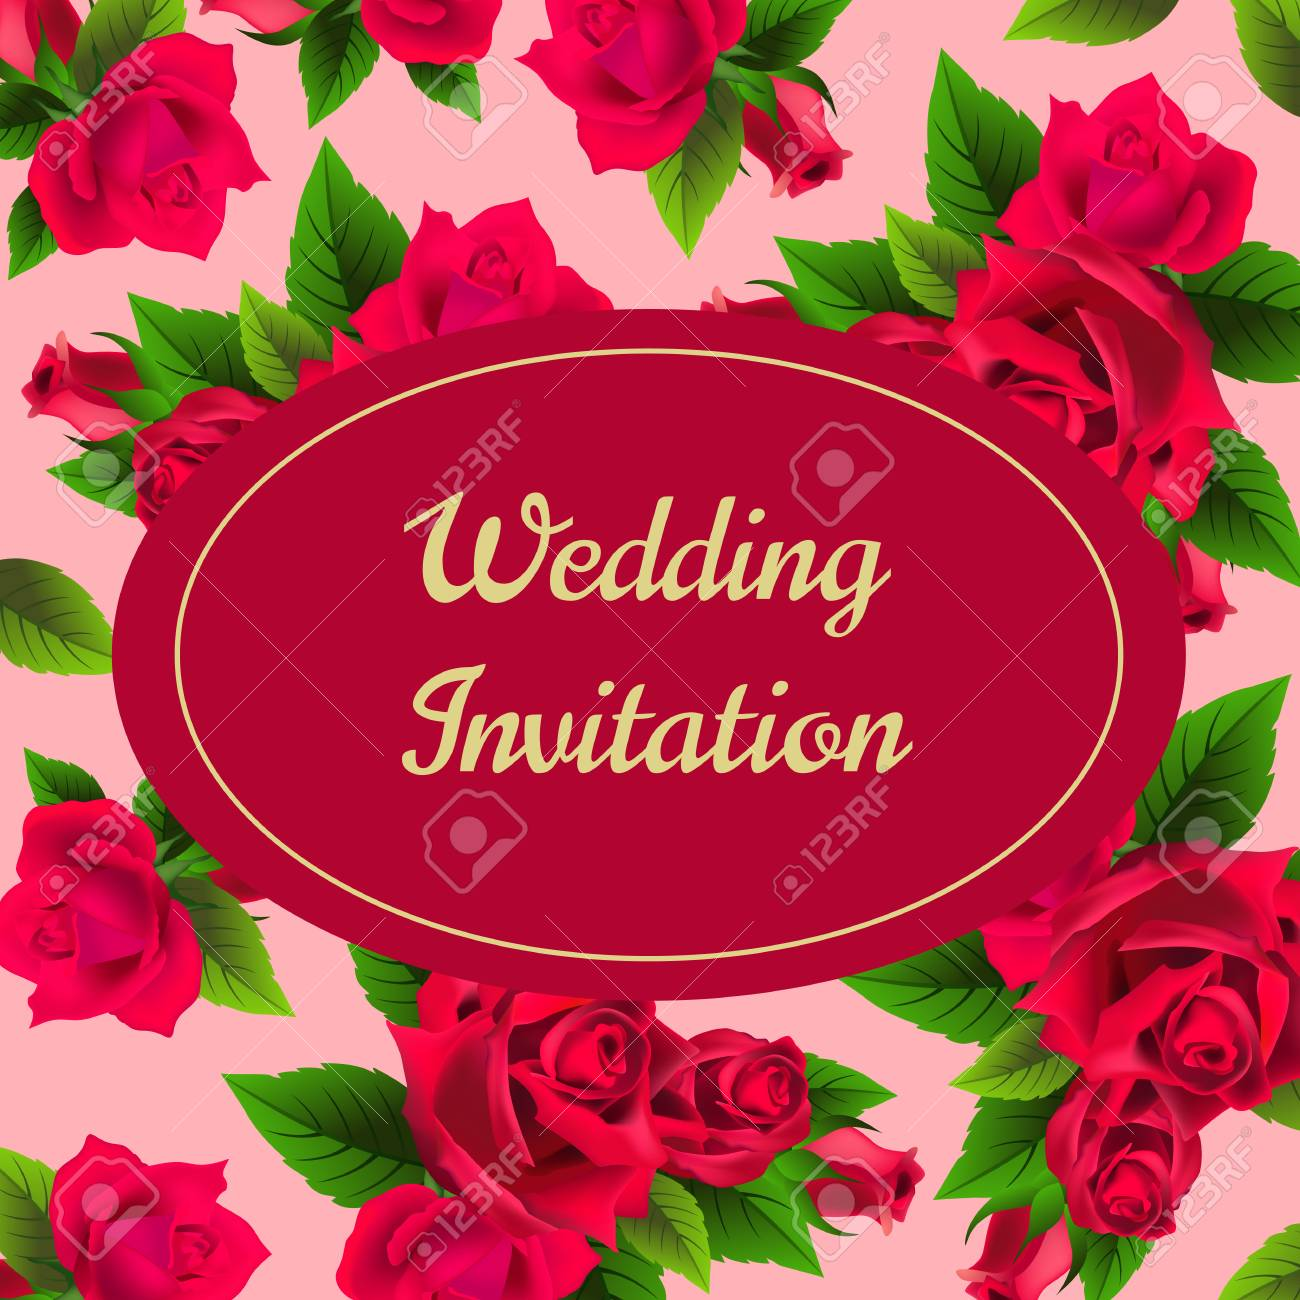 Wedding Invitation Card Design With Red Roses On Pink Background ...